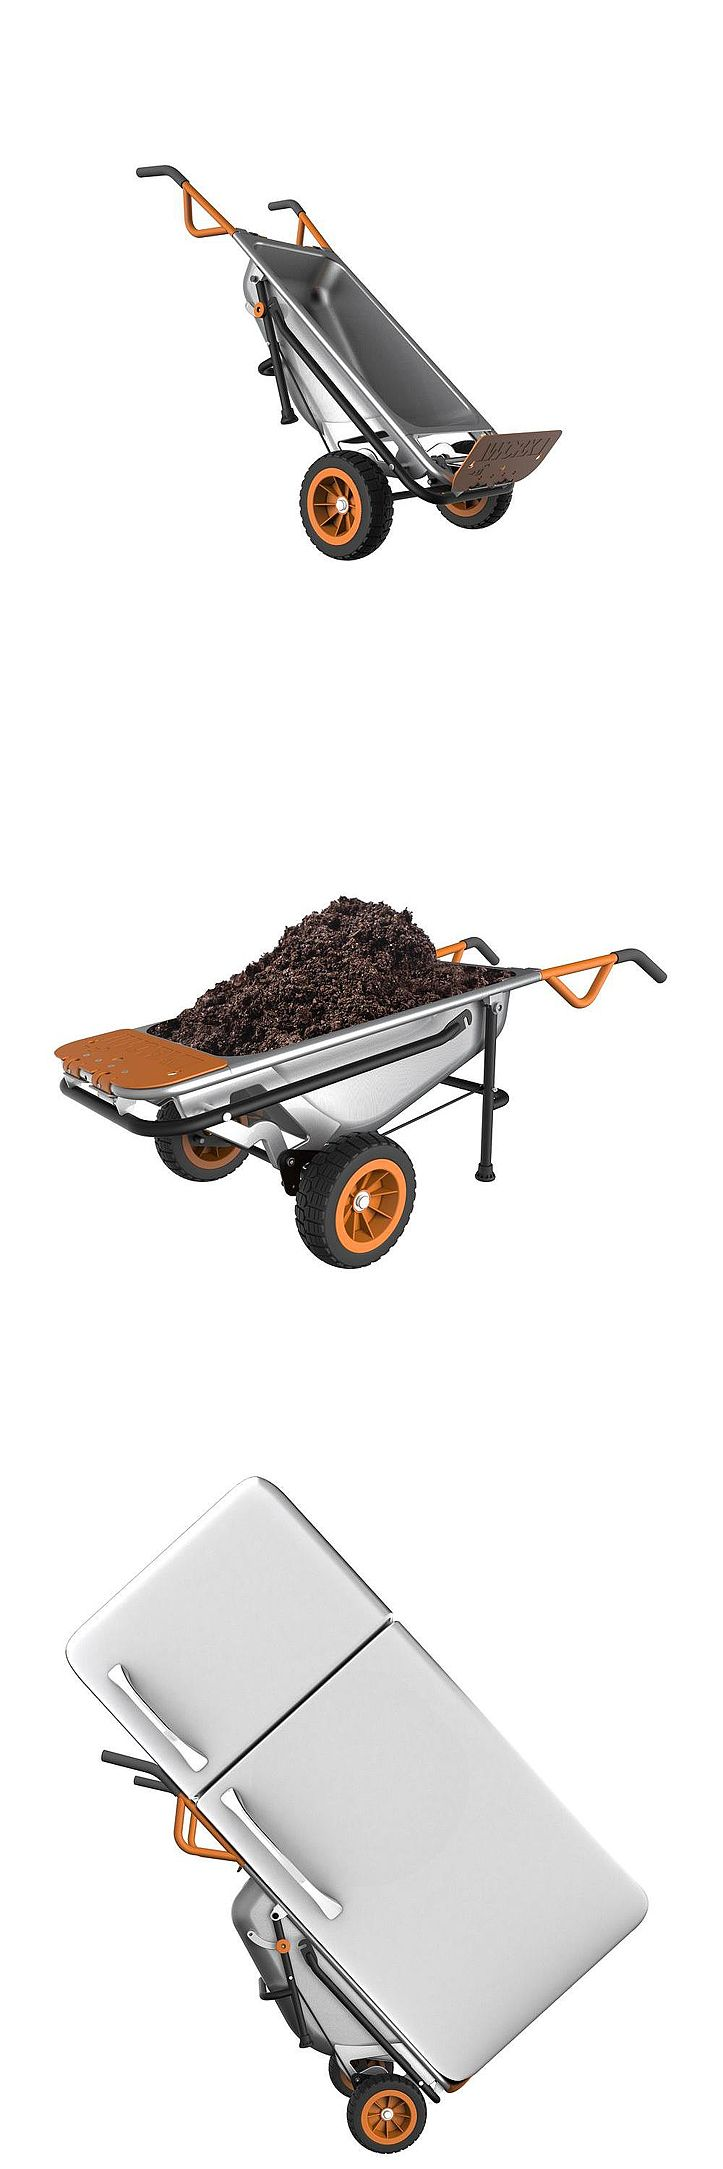 The Worx AeroCart is the most innovative cart around. It has the ability to convert instantly from a wheelbarrow to a dolly and much more. It makes yard work, moving, or carrying bulky objects easier. The patented design adjusts center of gravity for a balanced and easy-to-manage load.